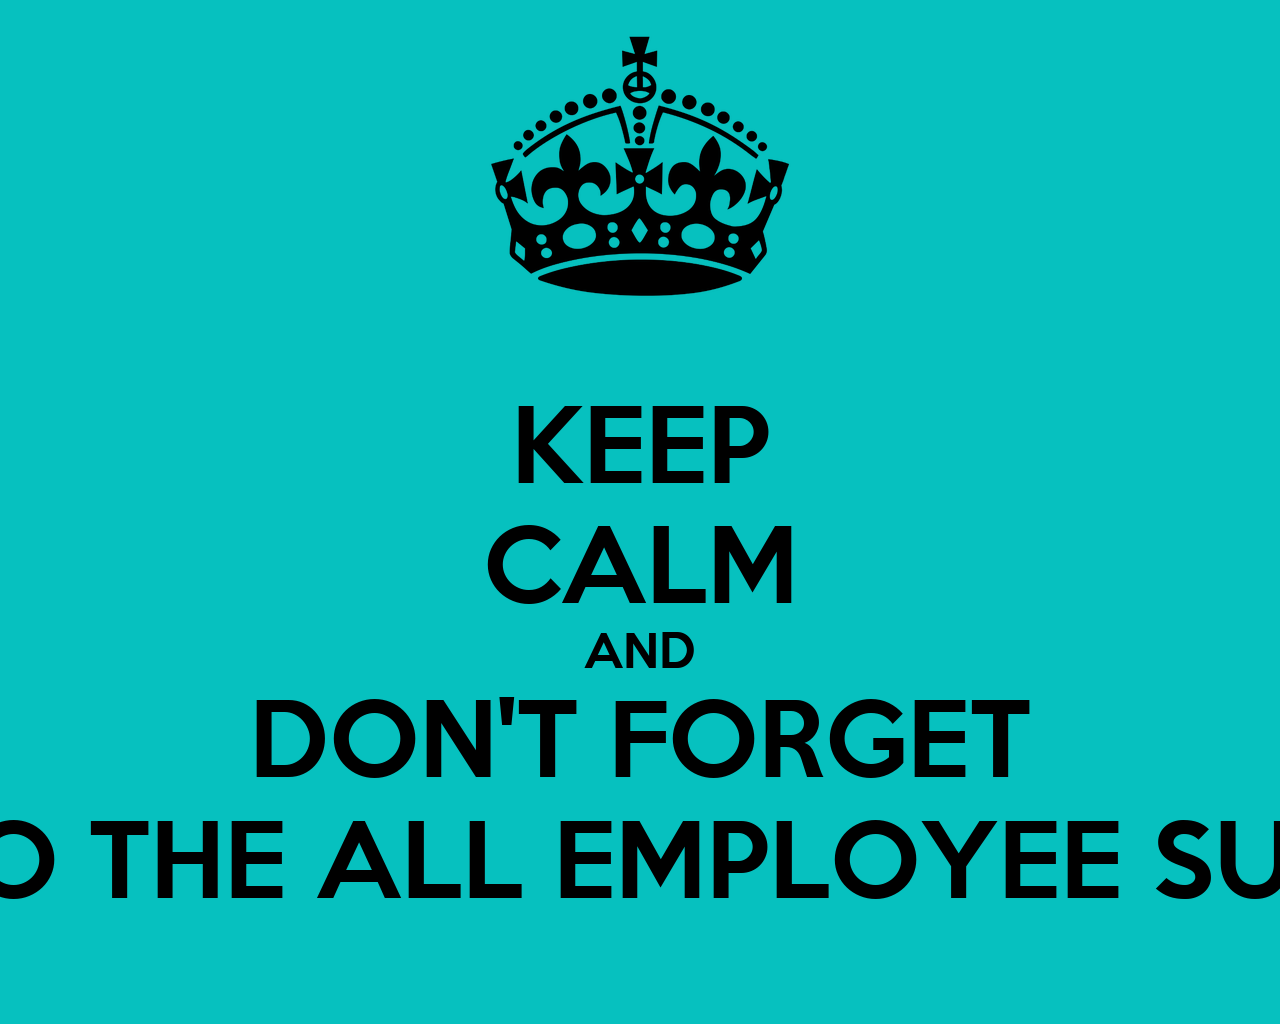 KEEP CALM AND DONT FORGET TO DO THE ALL EMPLOYEE SURVEY